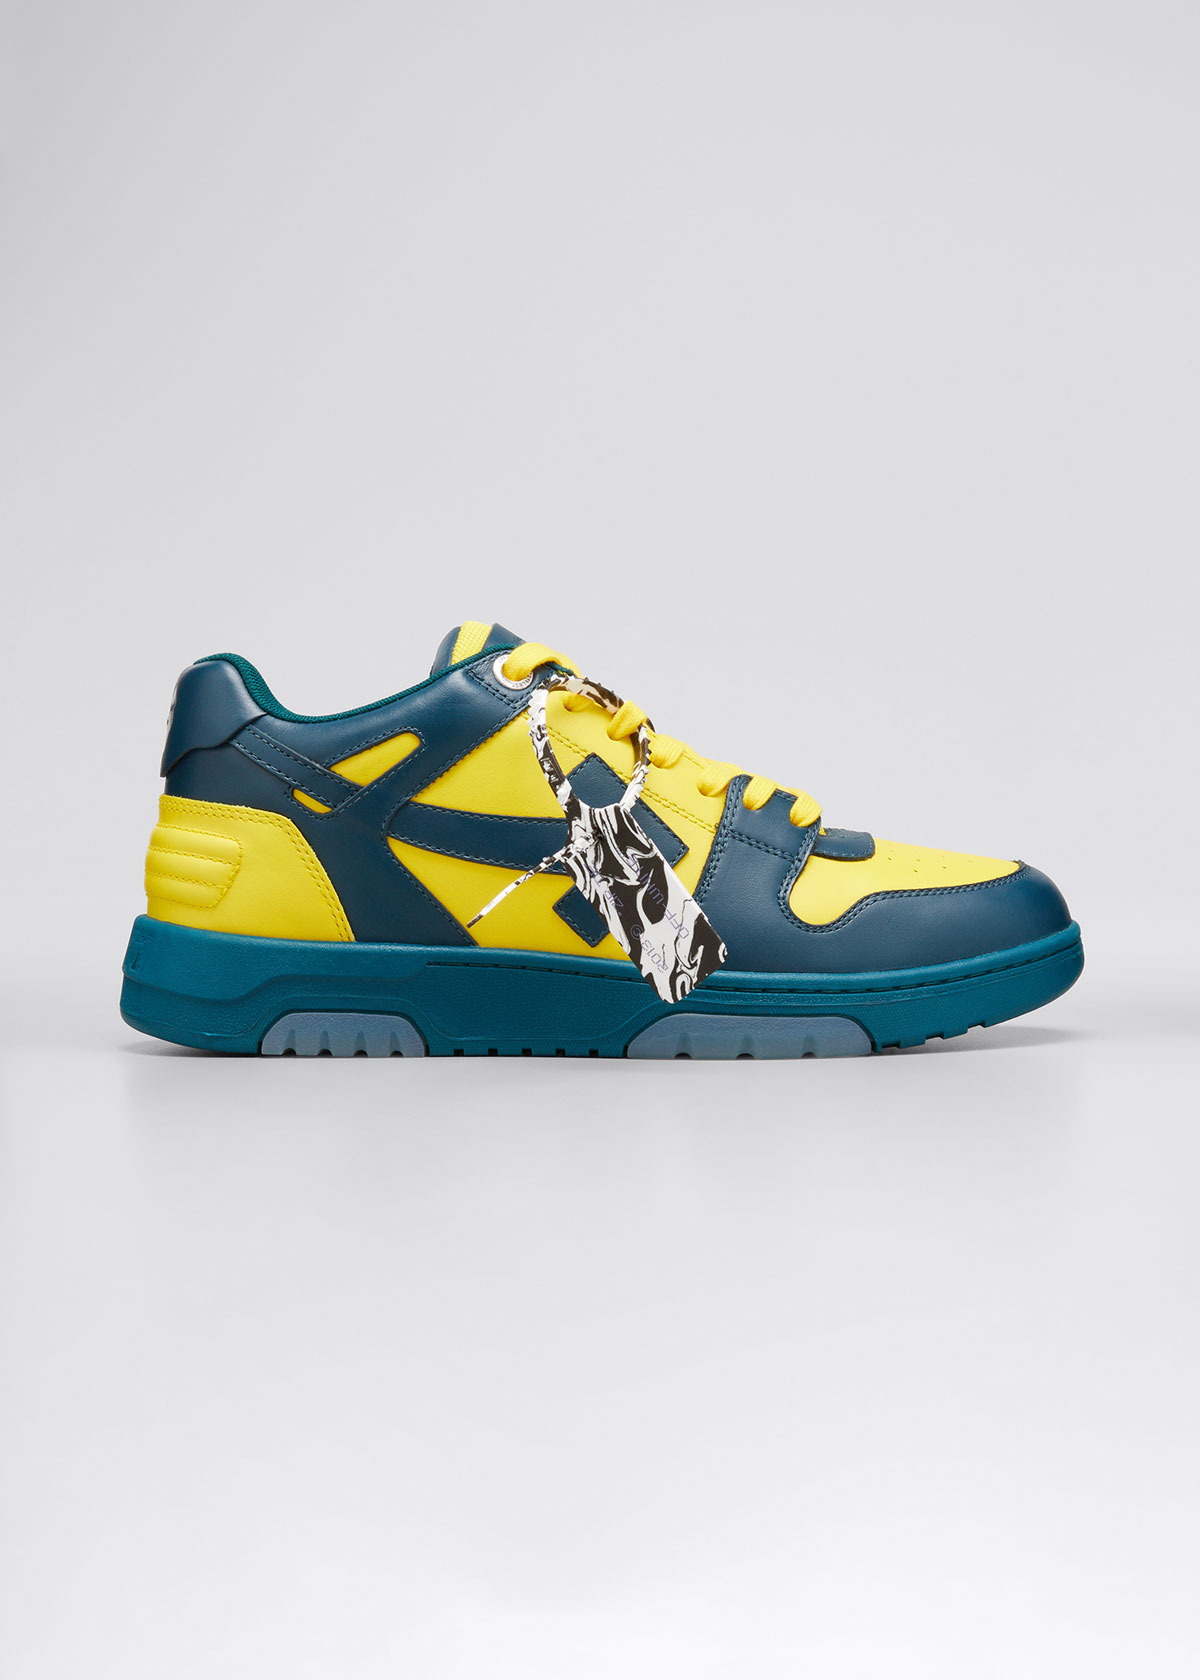 Off-White Leathers MEN'S OUT OF OFFICE BICOLOR LEATHER SNEAKERS